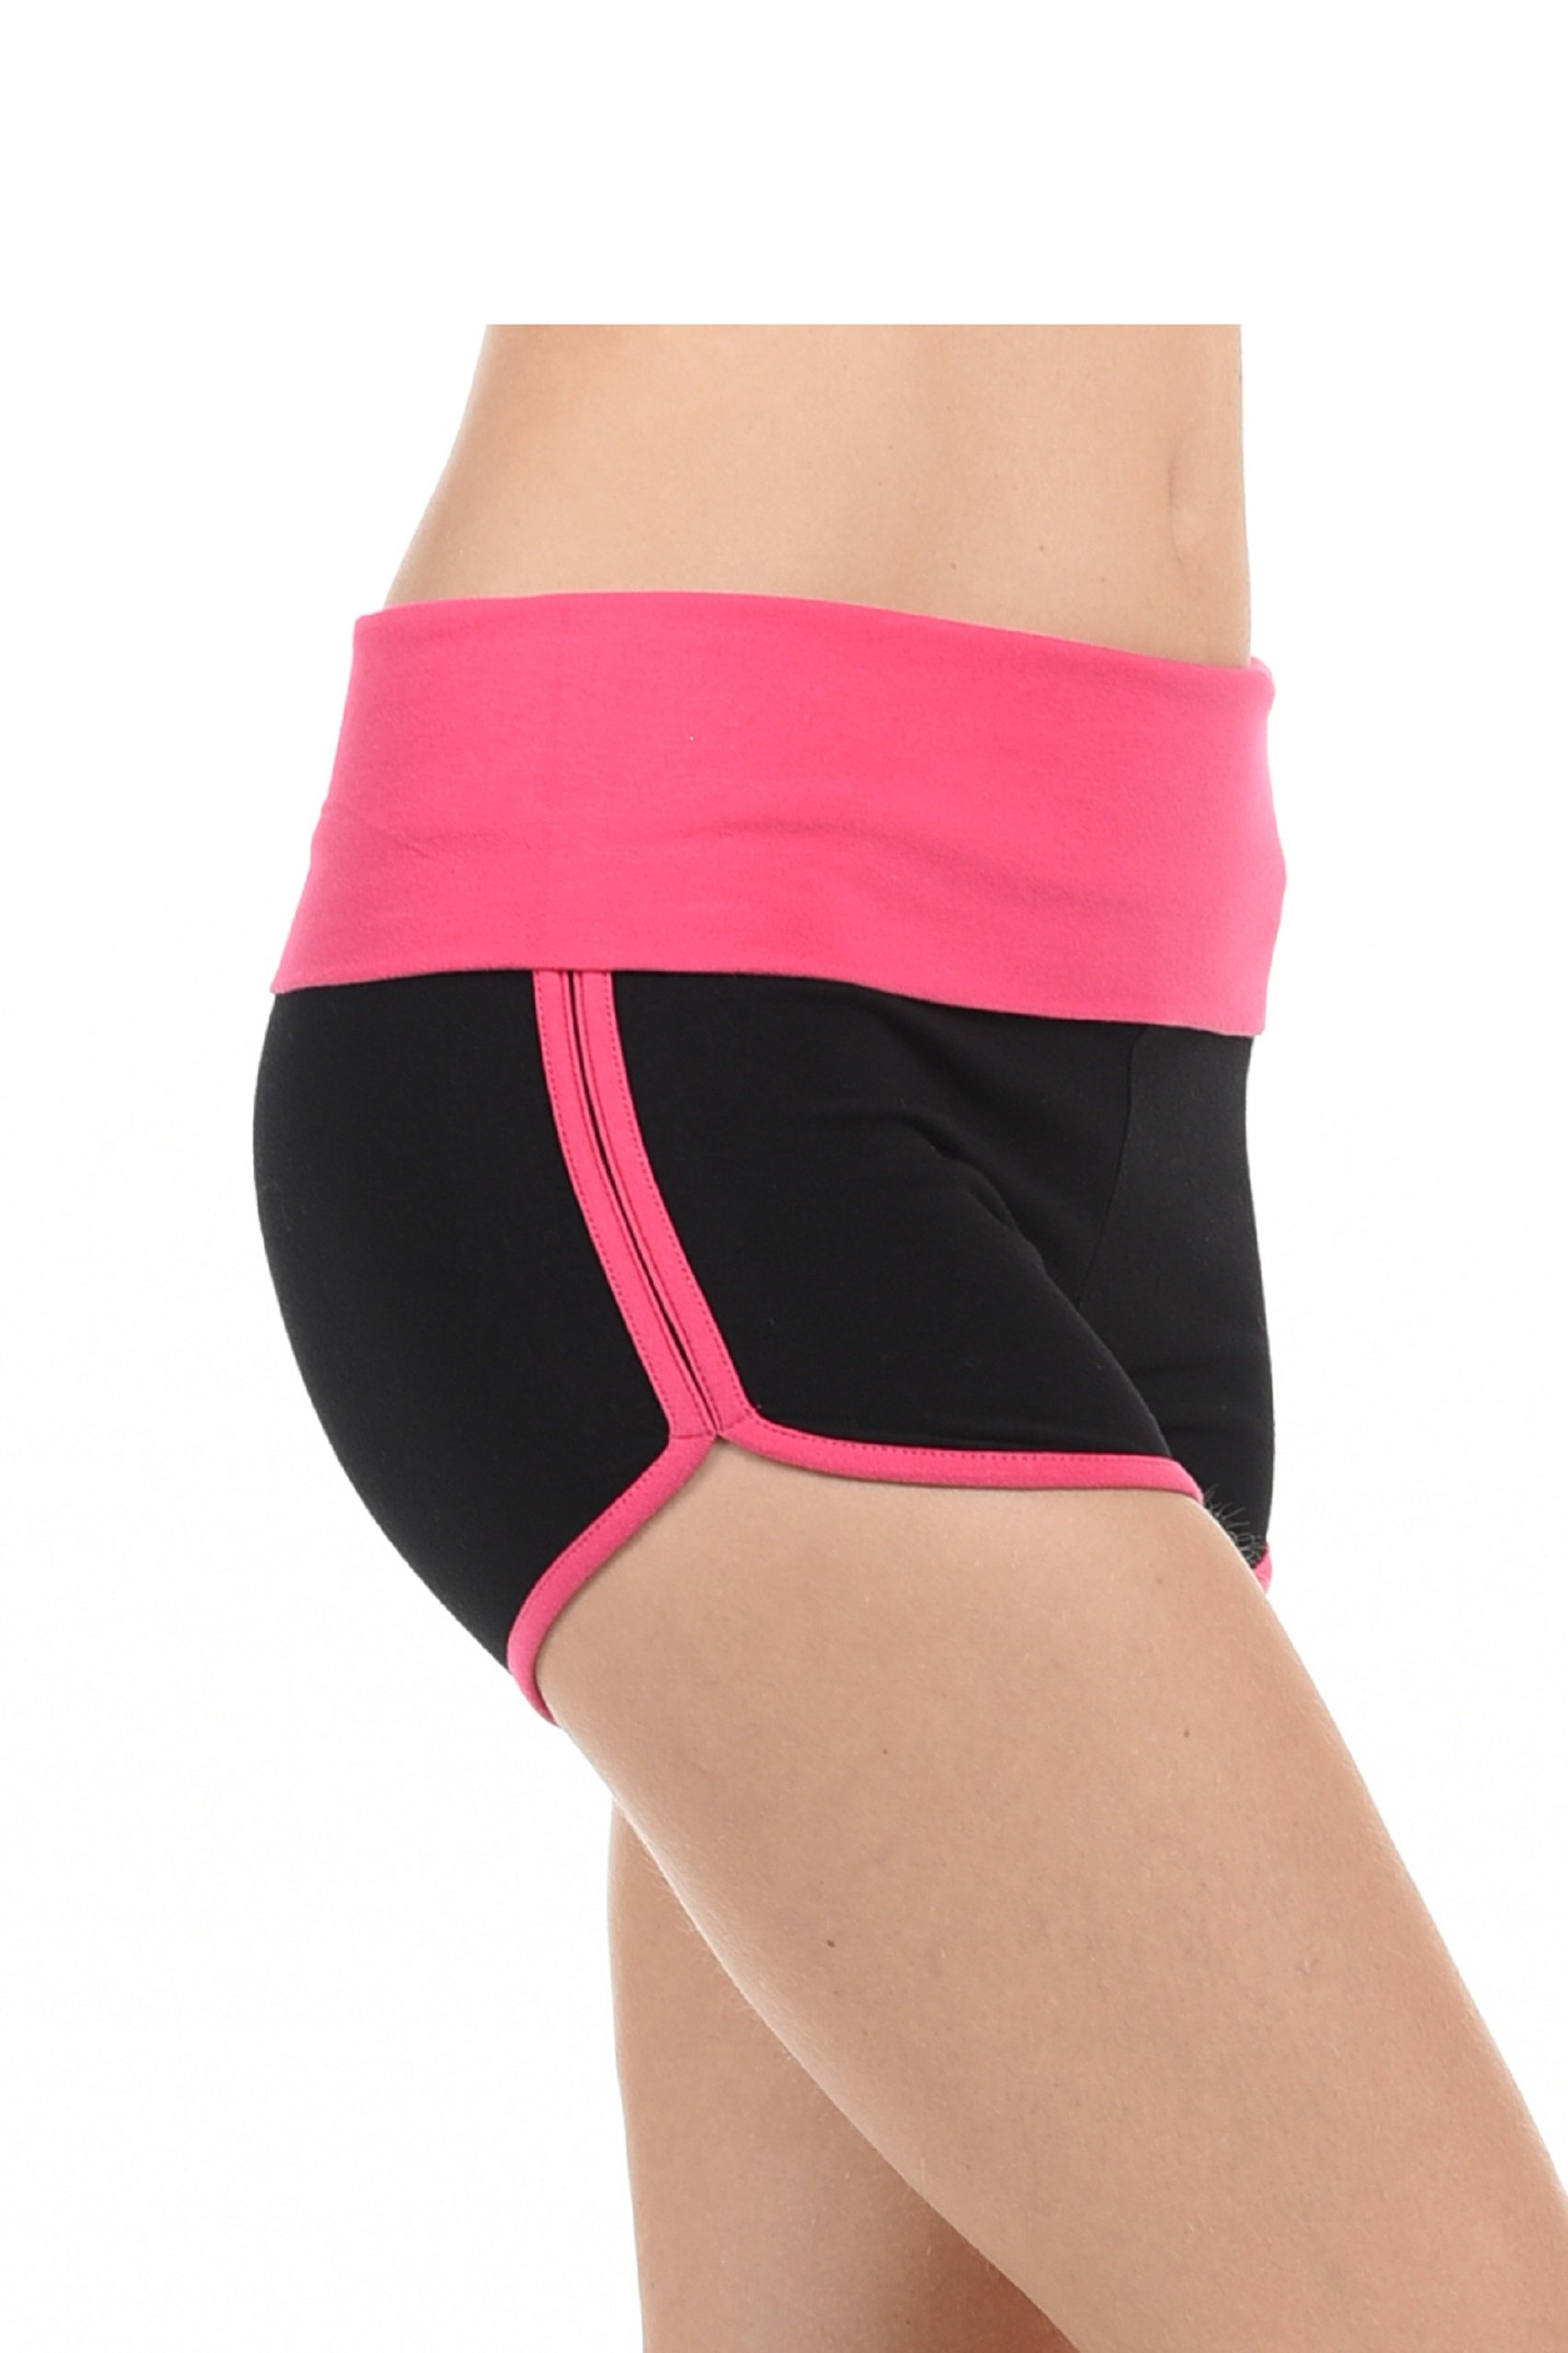 Athletic Curves Trimming Hot Yoga Shorts: Shorts for Juniors BLK/Pink L